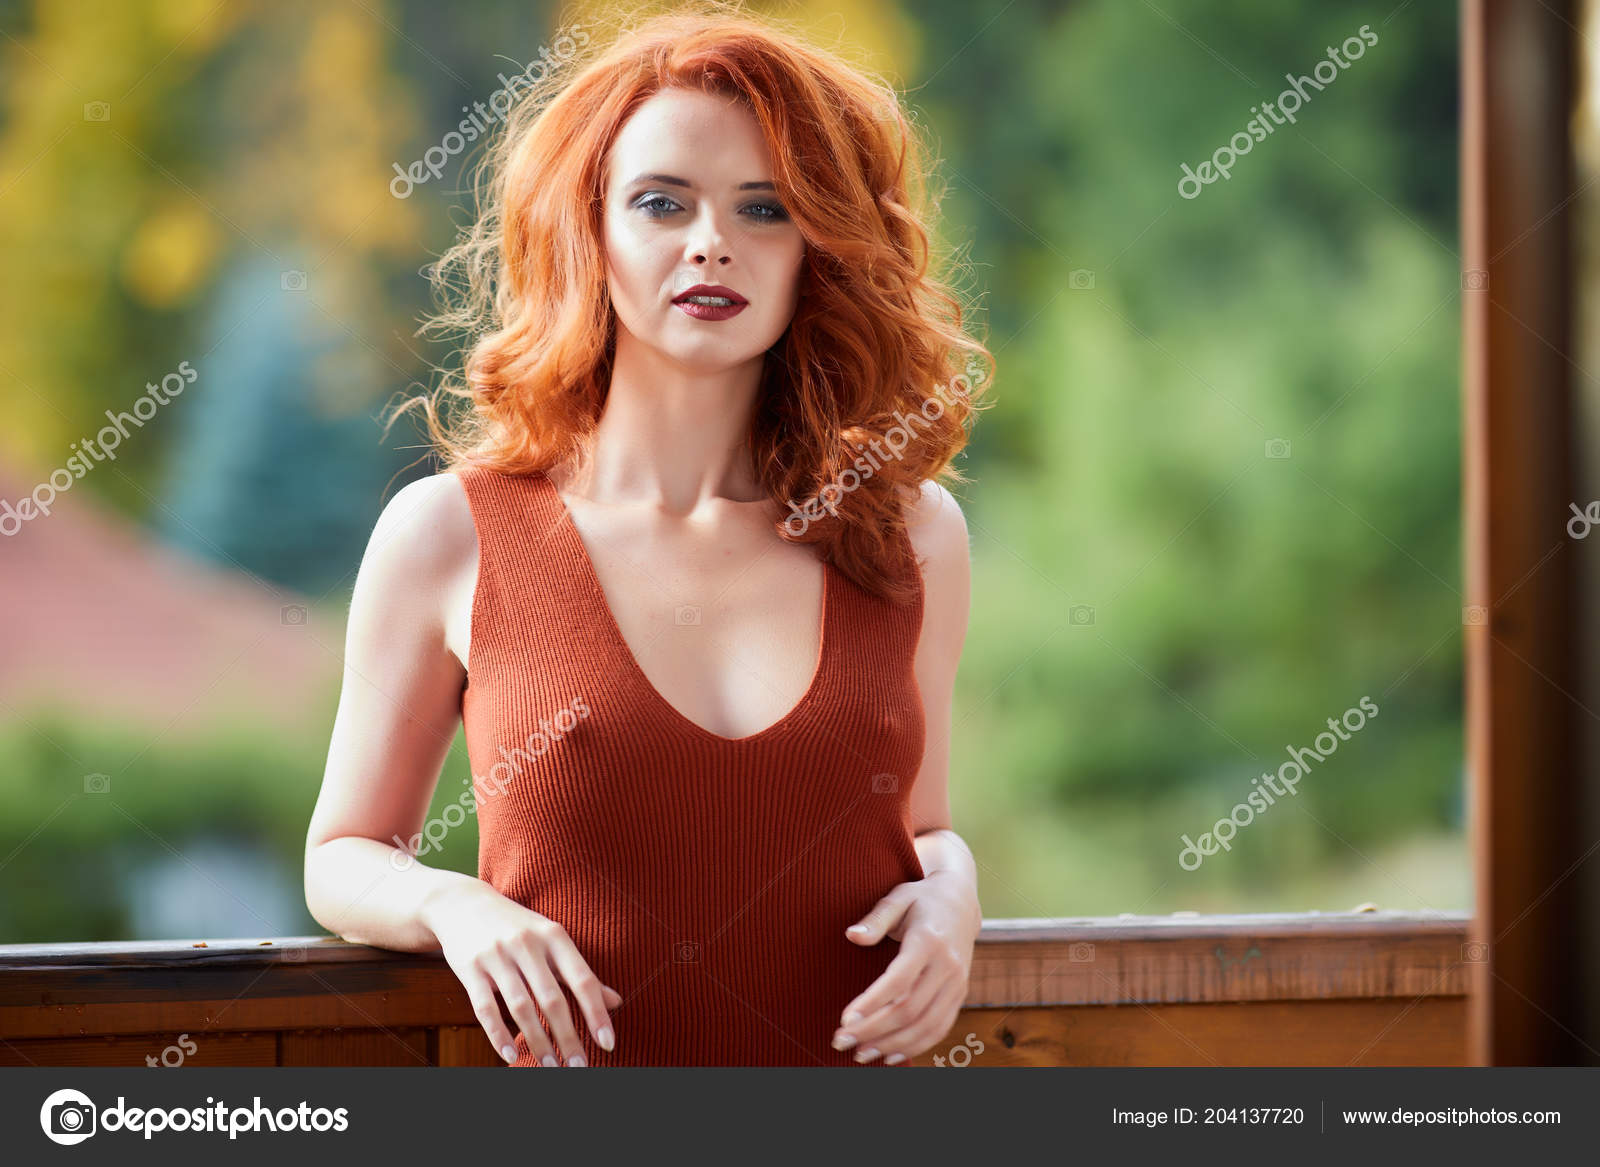 Beauty Romantic Girl Outdoors Enjoying Nature Beautiful Autumn Red Hair Stock Photo C Zoomteam 204137720